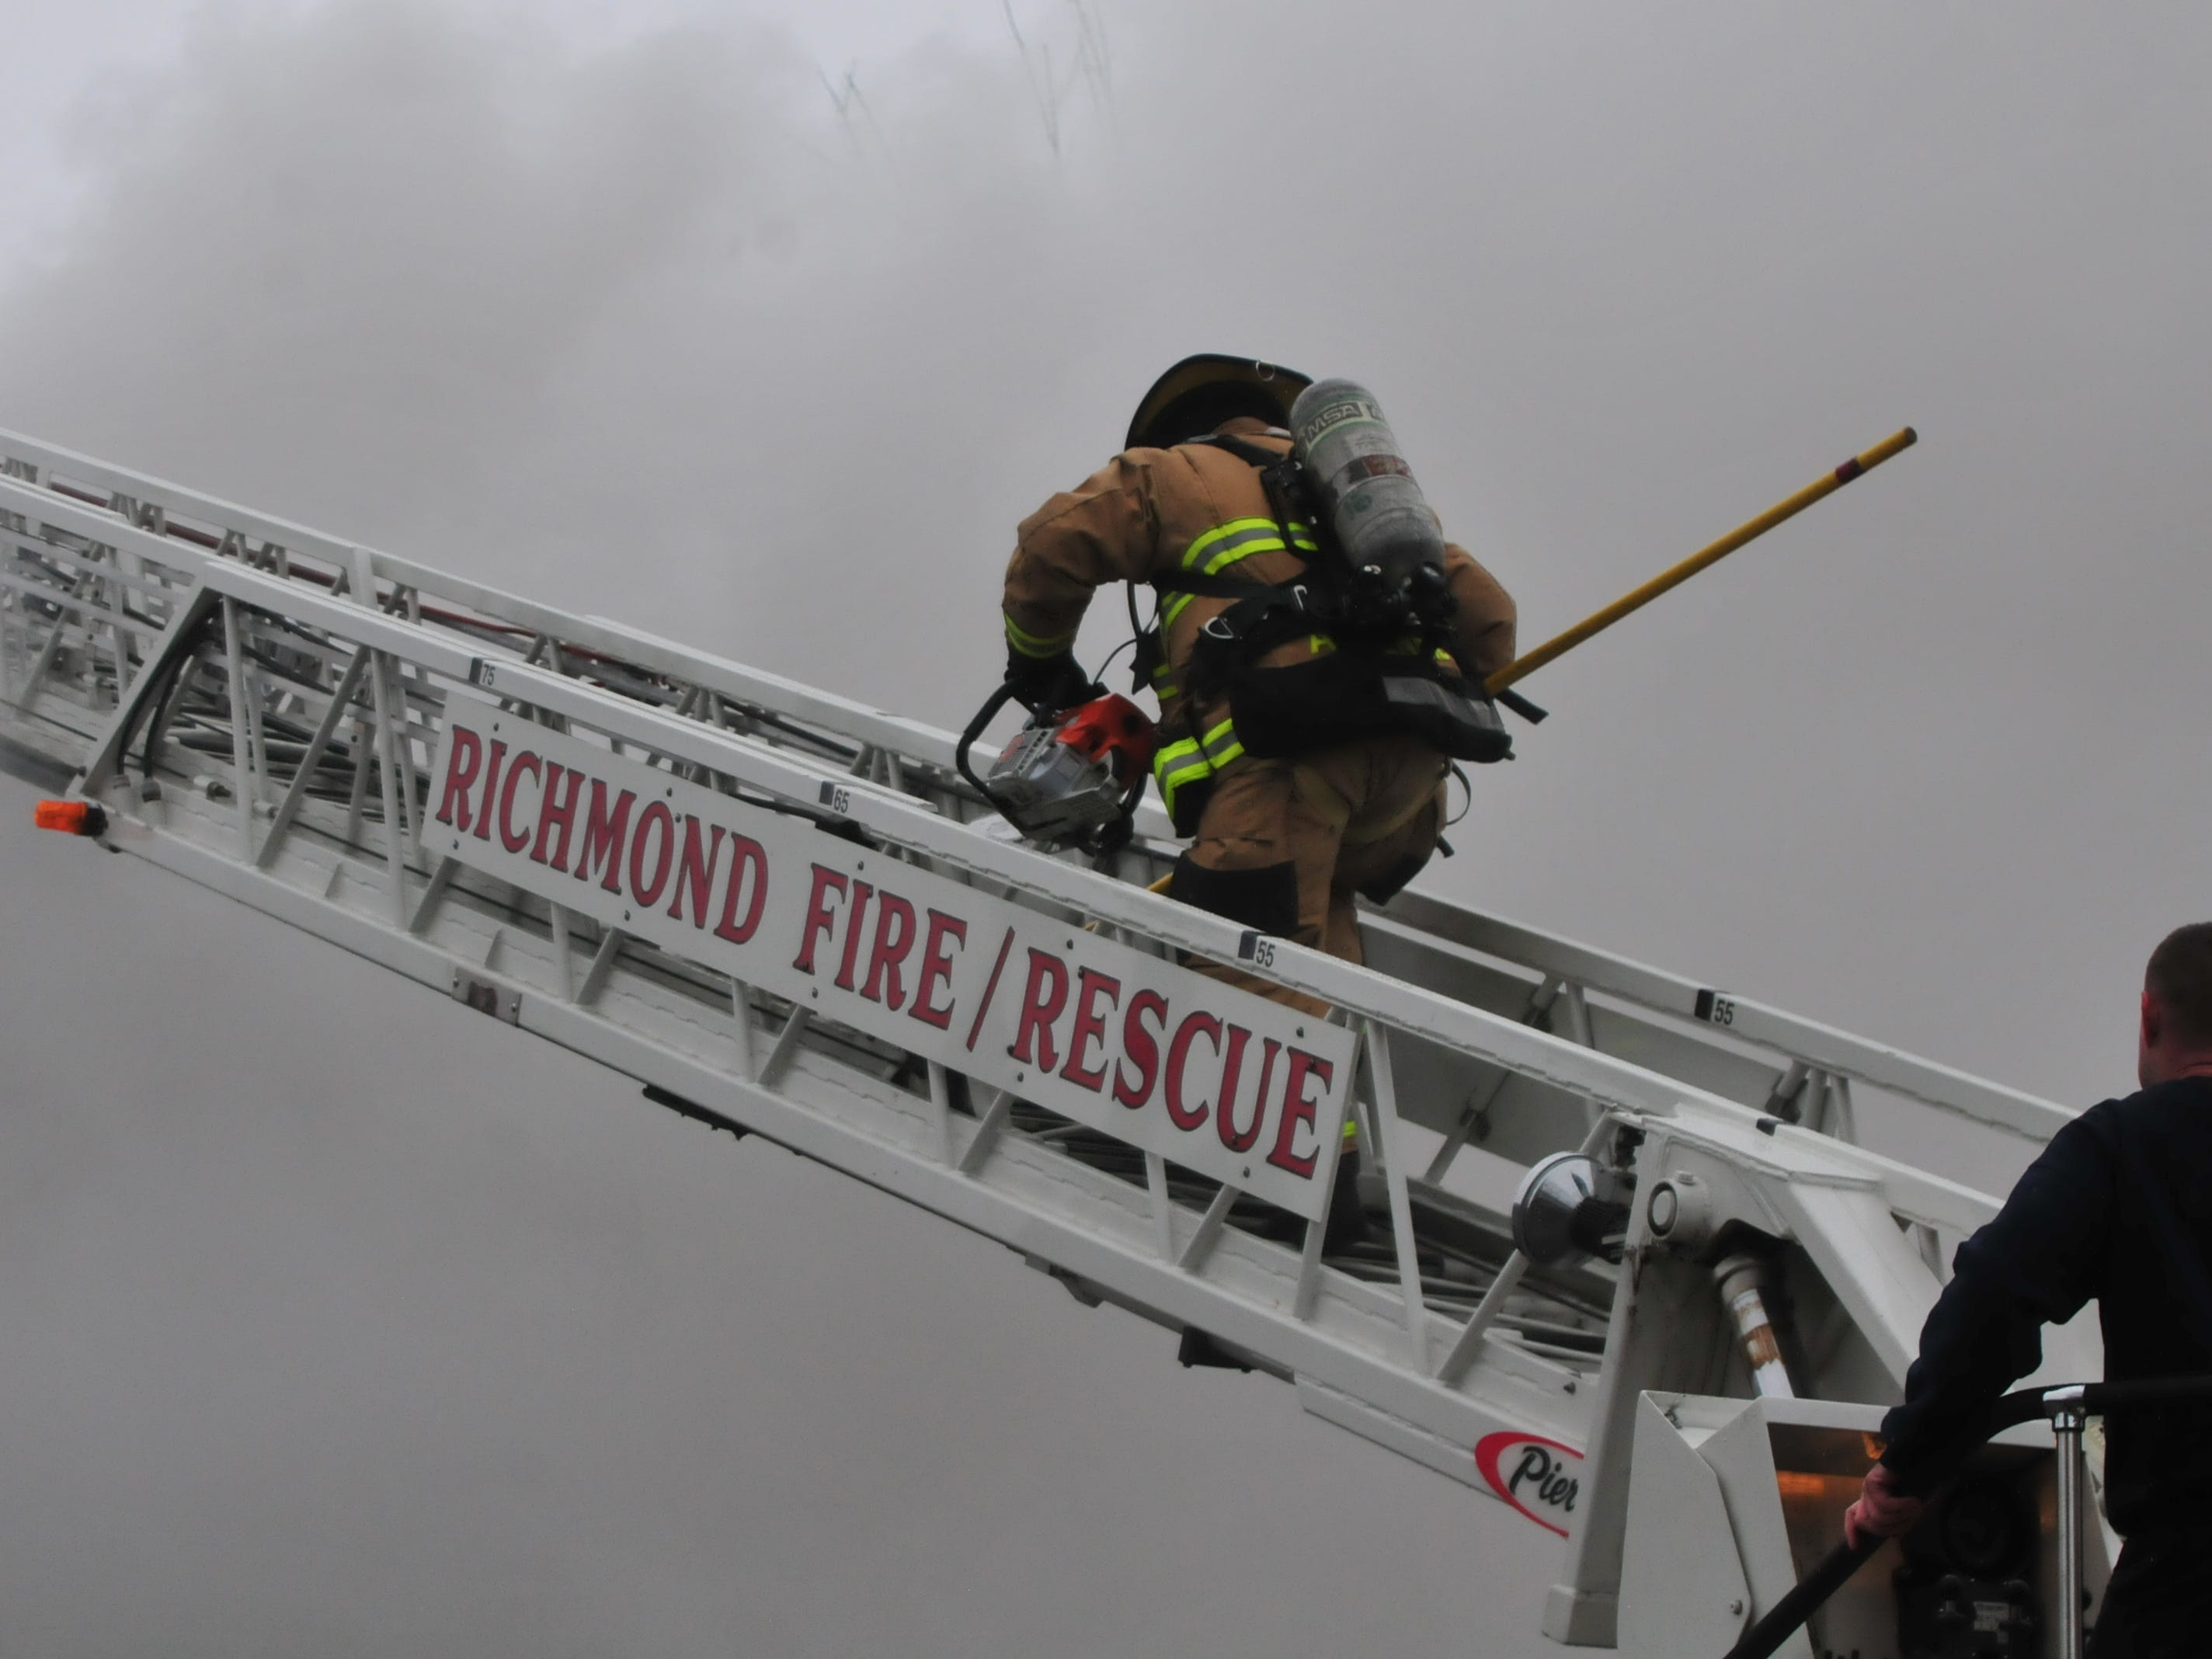 Richmond Fire Department personnel used an aerial ladder to access the roof while fighting a fire Wednesday at 112 N. 18th St.